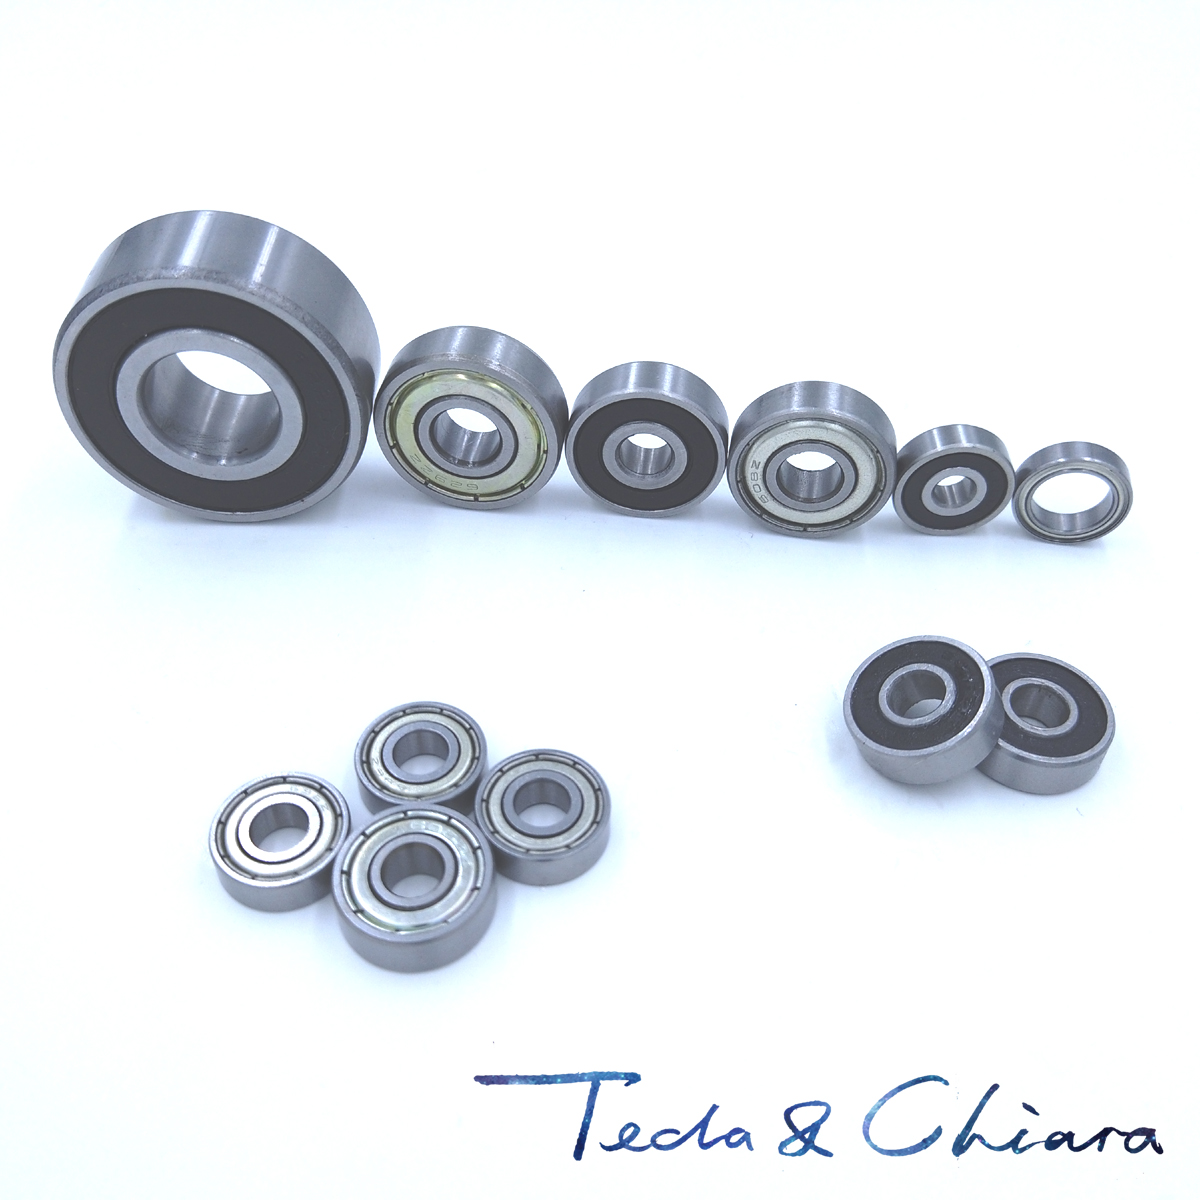 10Pcs 6204 <font><b>6204ZZ</b></font> 6204RS 6204-2Z 6204Z 6204-2RS ZZ RS RZ 2RZ Deep Groove Ball Bearings 20 x 47 x 14mm High Quality image